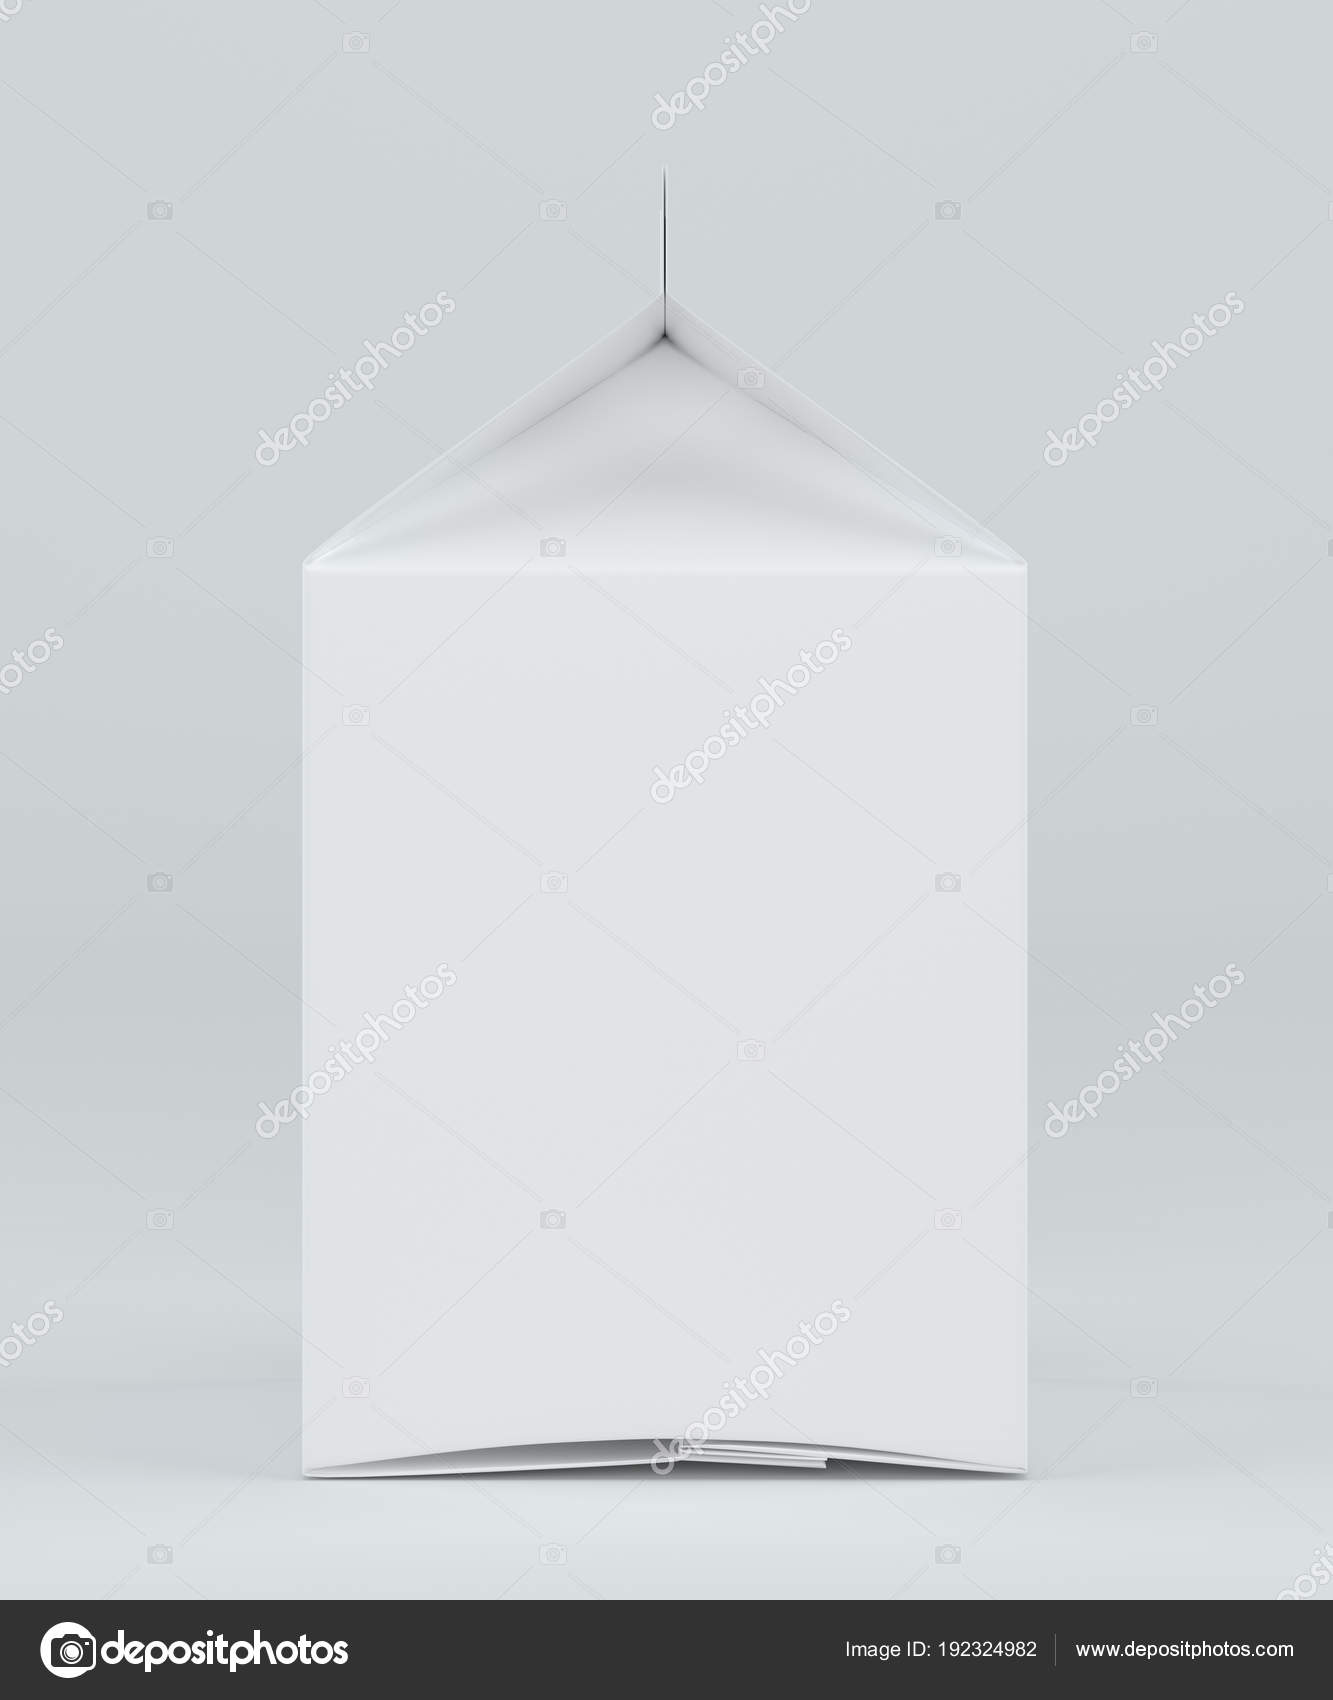 White carton pack template for beverage juice milk front and side white carton pack template for beverage juice milk front and side view packaging collection 3d rendering photo by mirexonlife maxwellsz